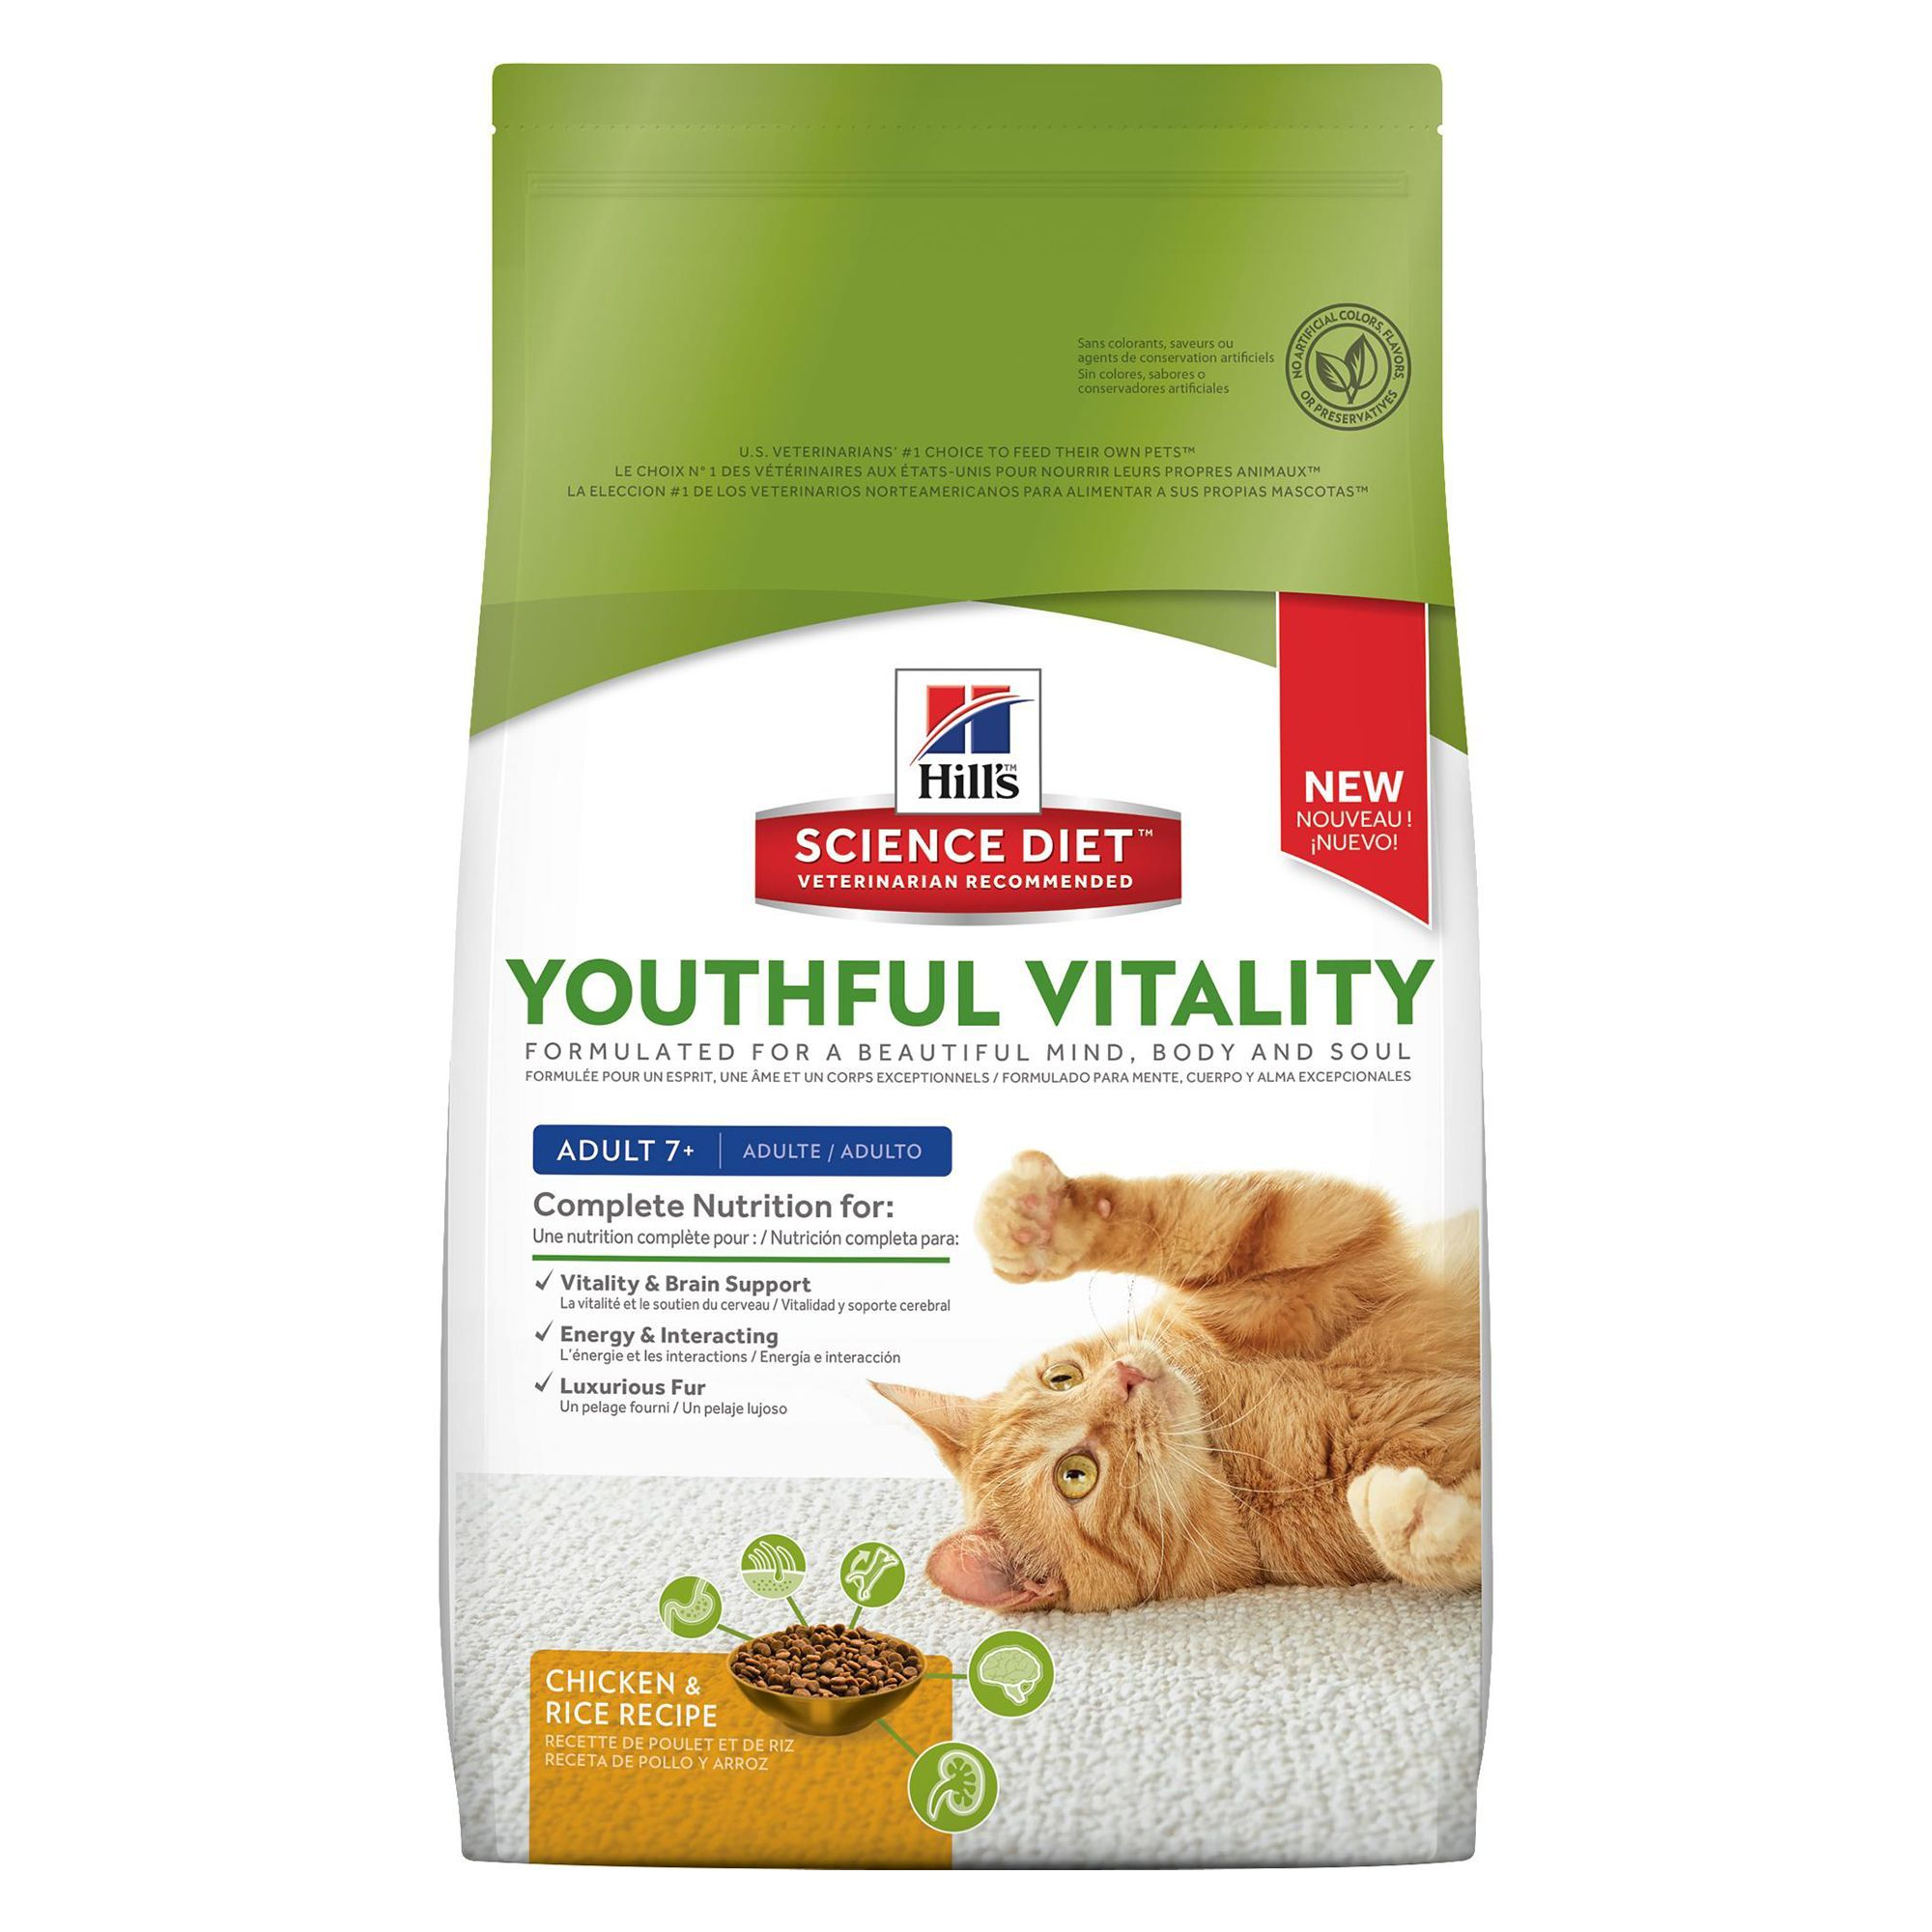 Hill's Science Diet Youthful Vitality Adult 7+ Cat Food